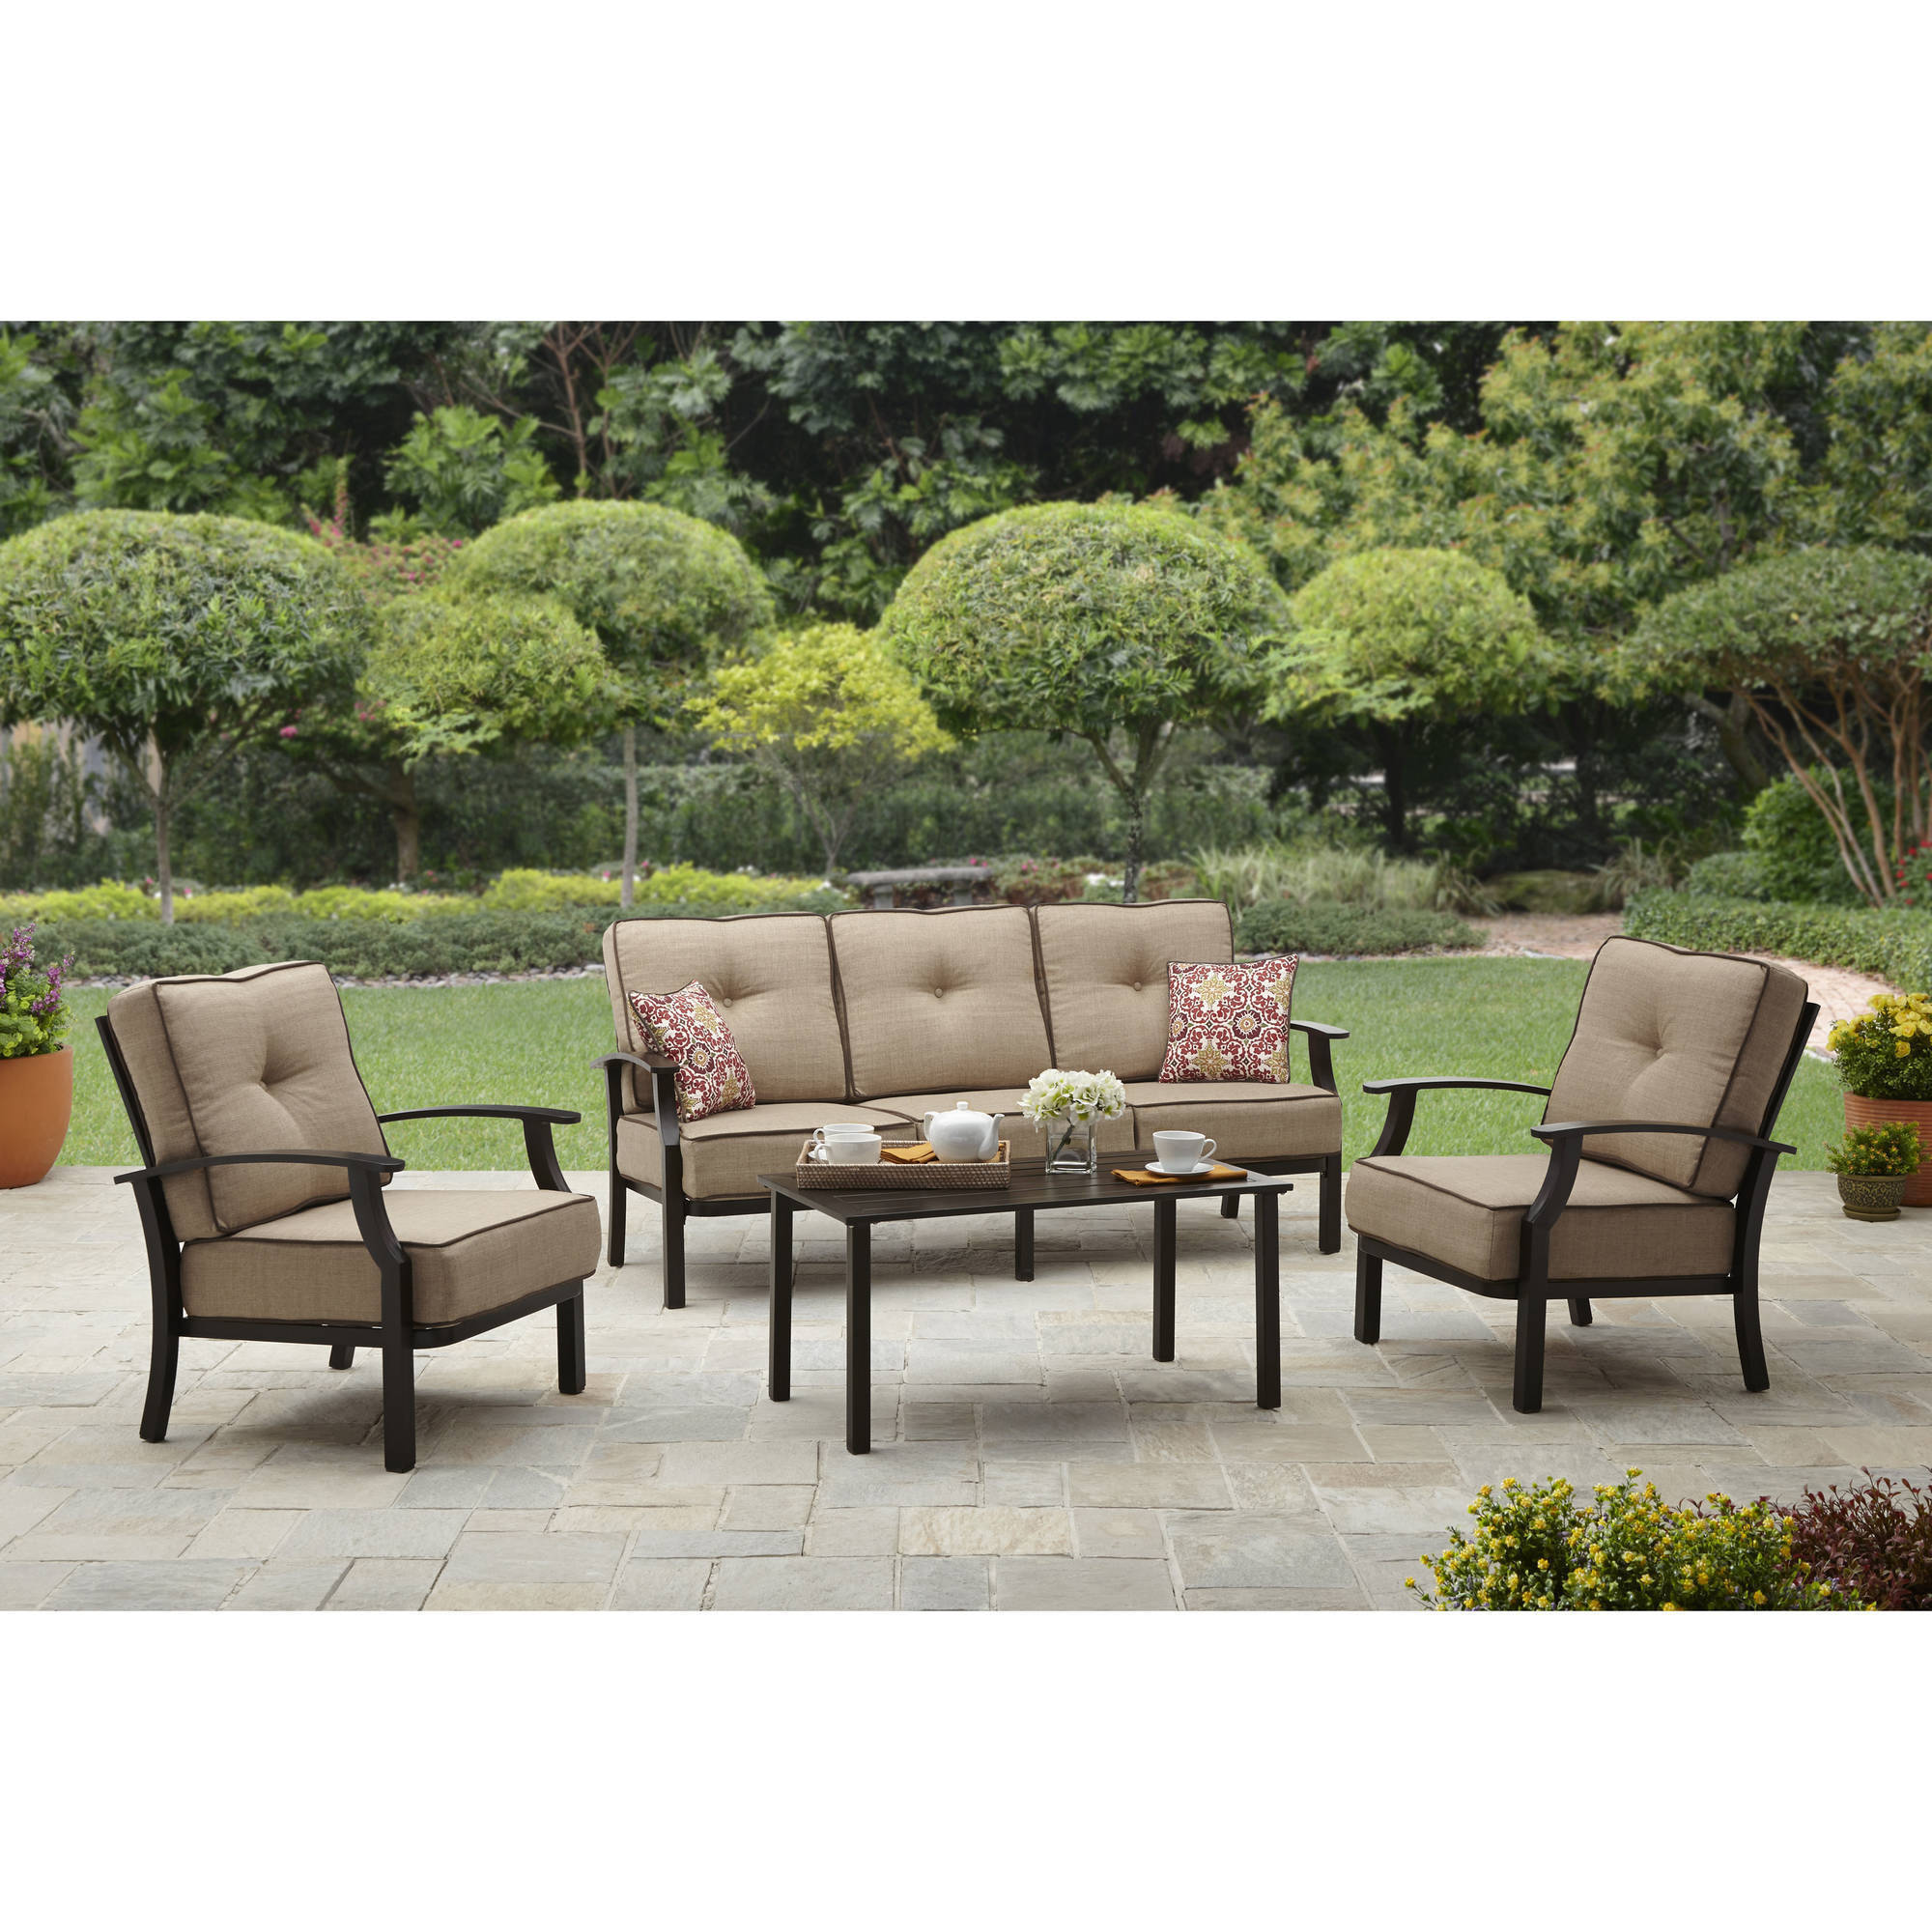 Garden Furniture Sets palm springs outdoor 4 pc furniture wicker patio set w/ chairs